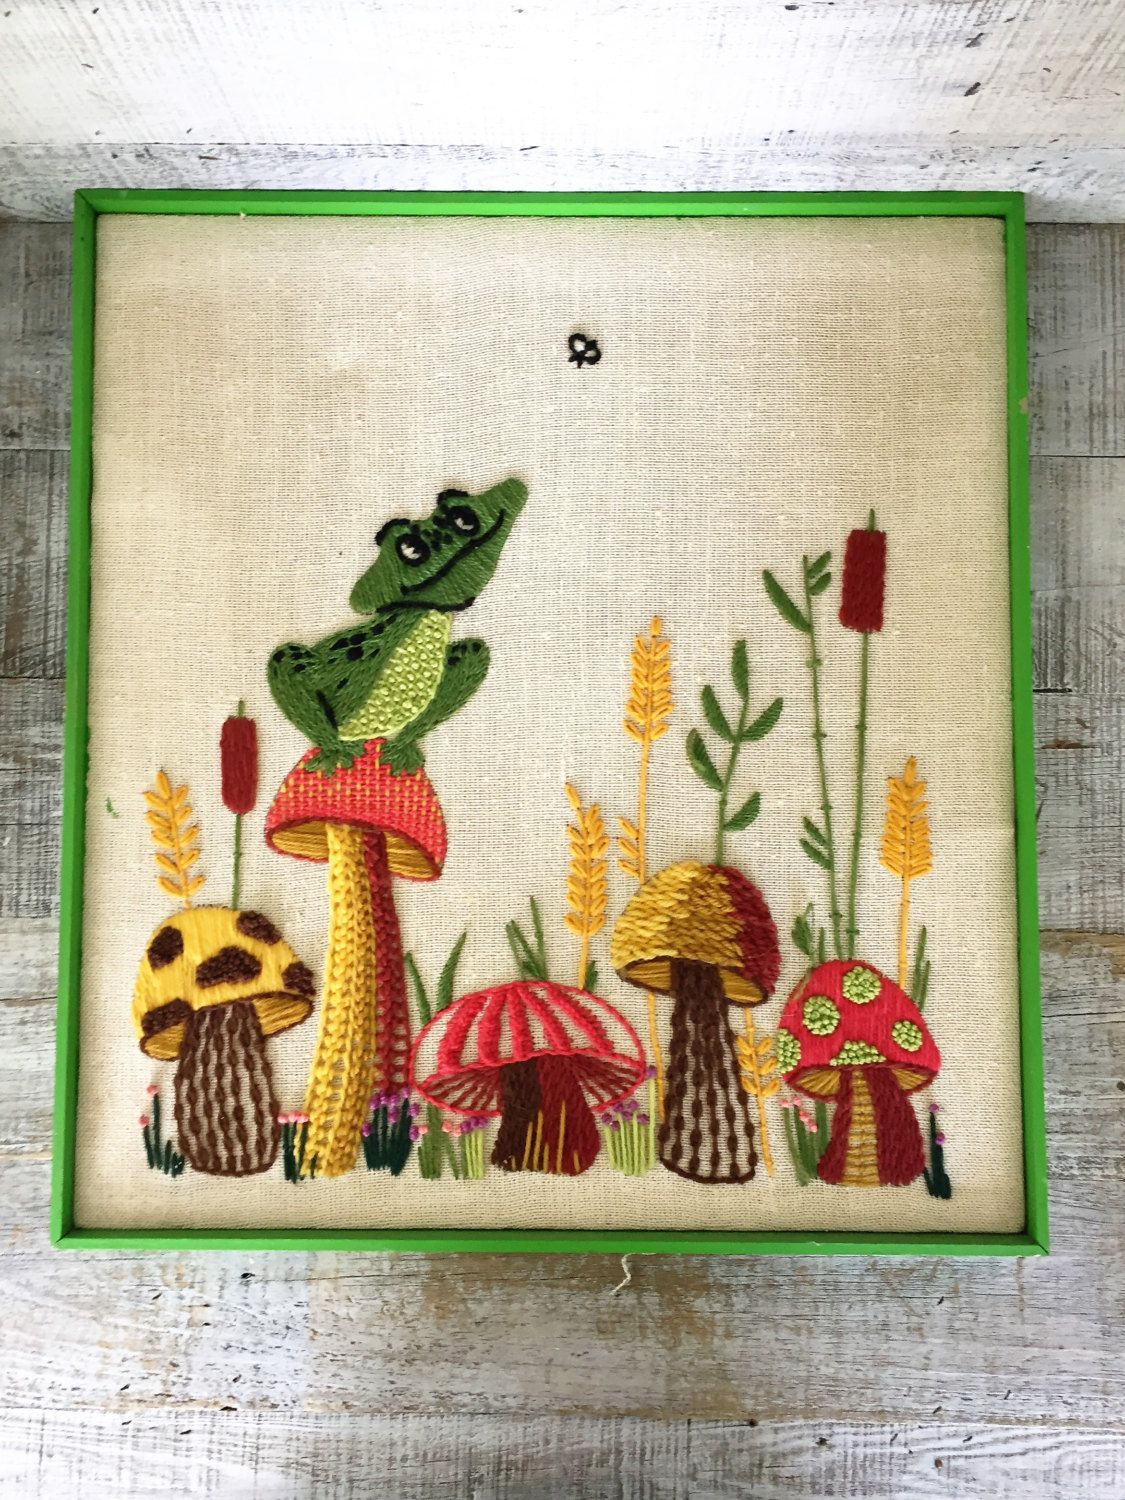 Embroidery Wall Art Retro Crewel Frog And Mushroom Wall Art Framed Embroidery Wall Hanging Framed Crewel Picture Needlepoint Wall Hangin Etsy Market Needl